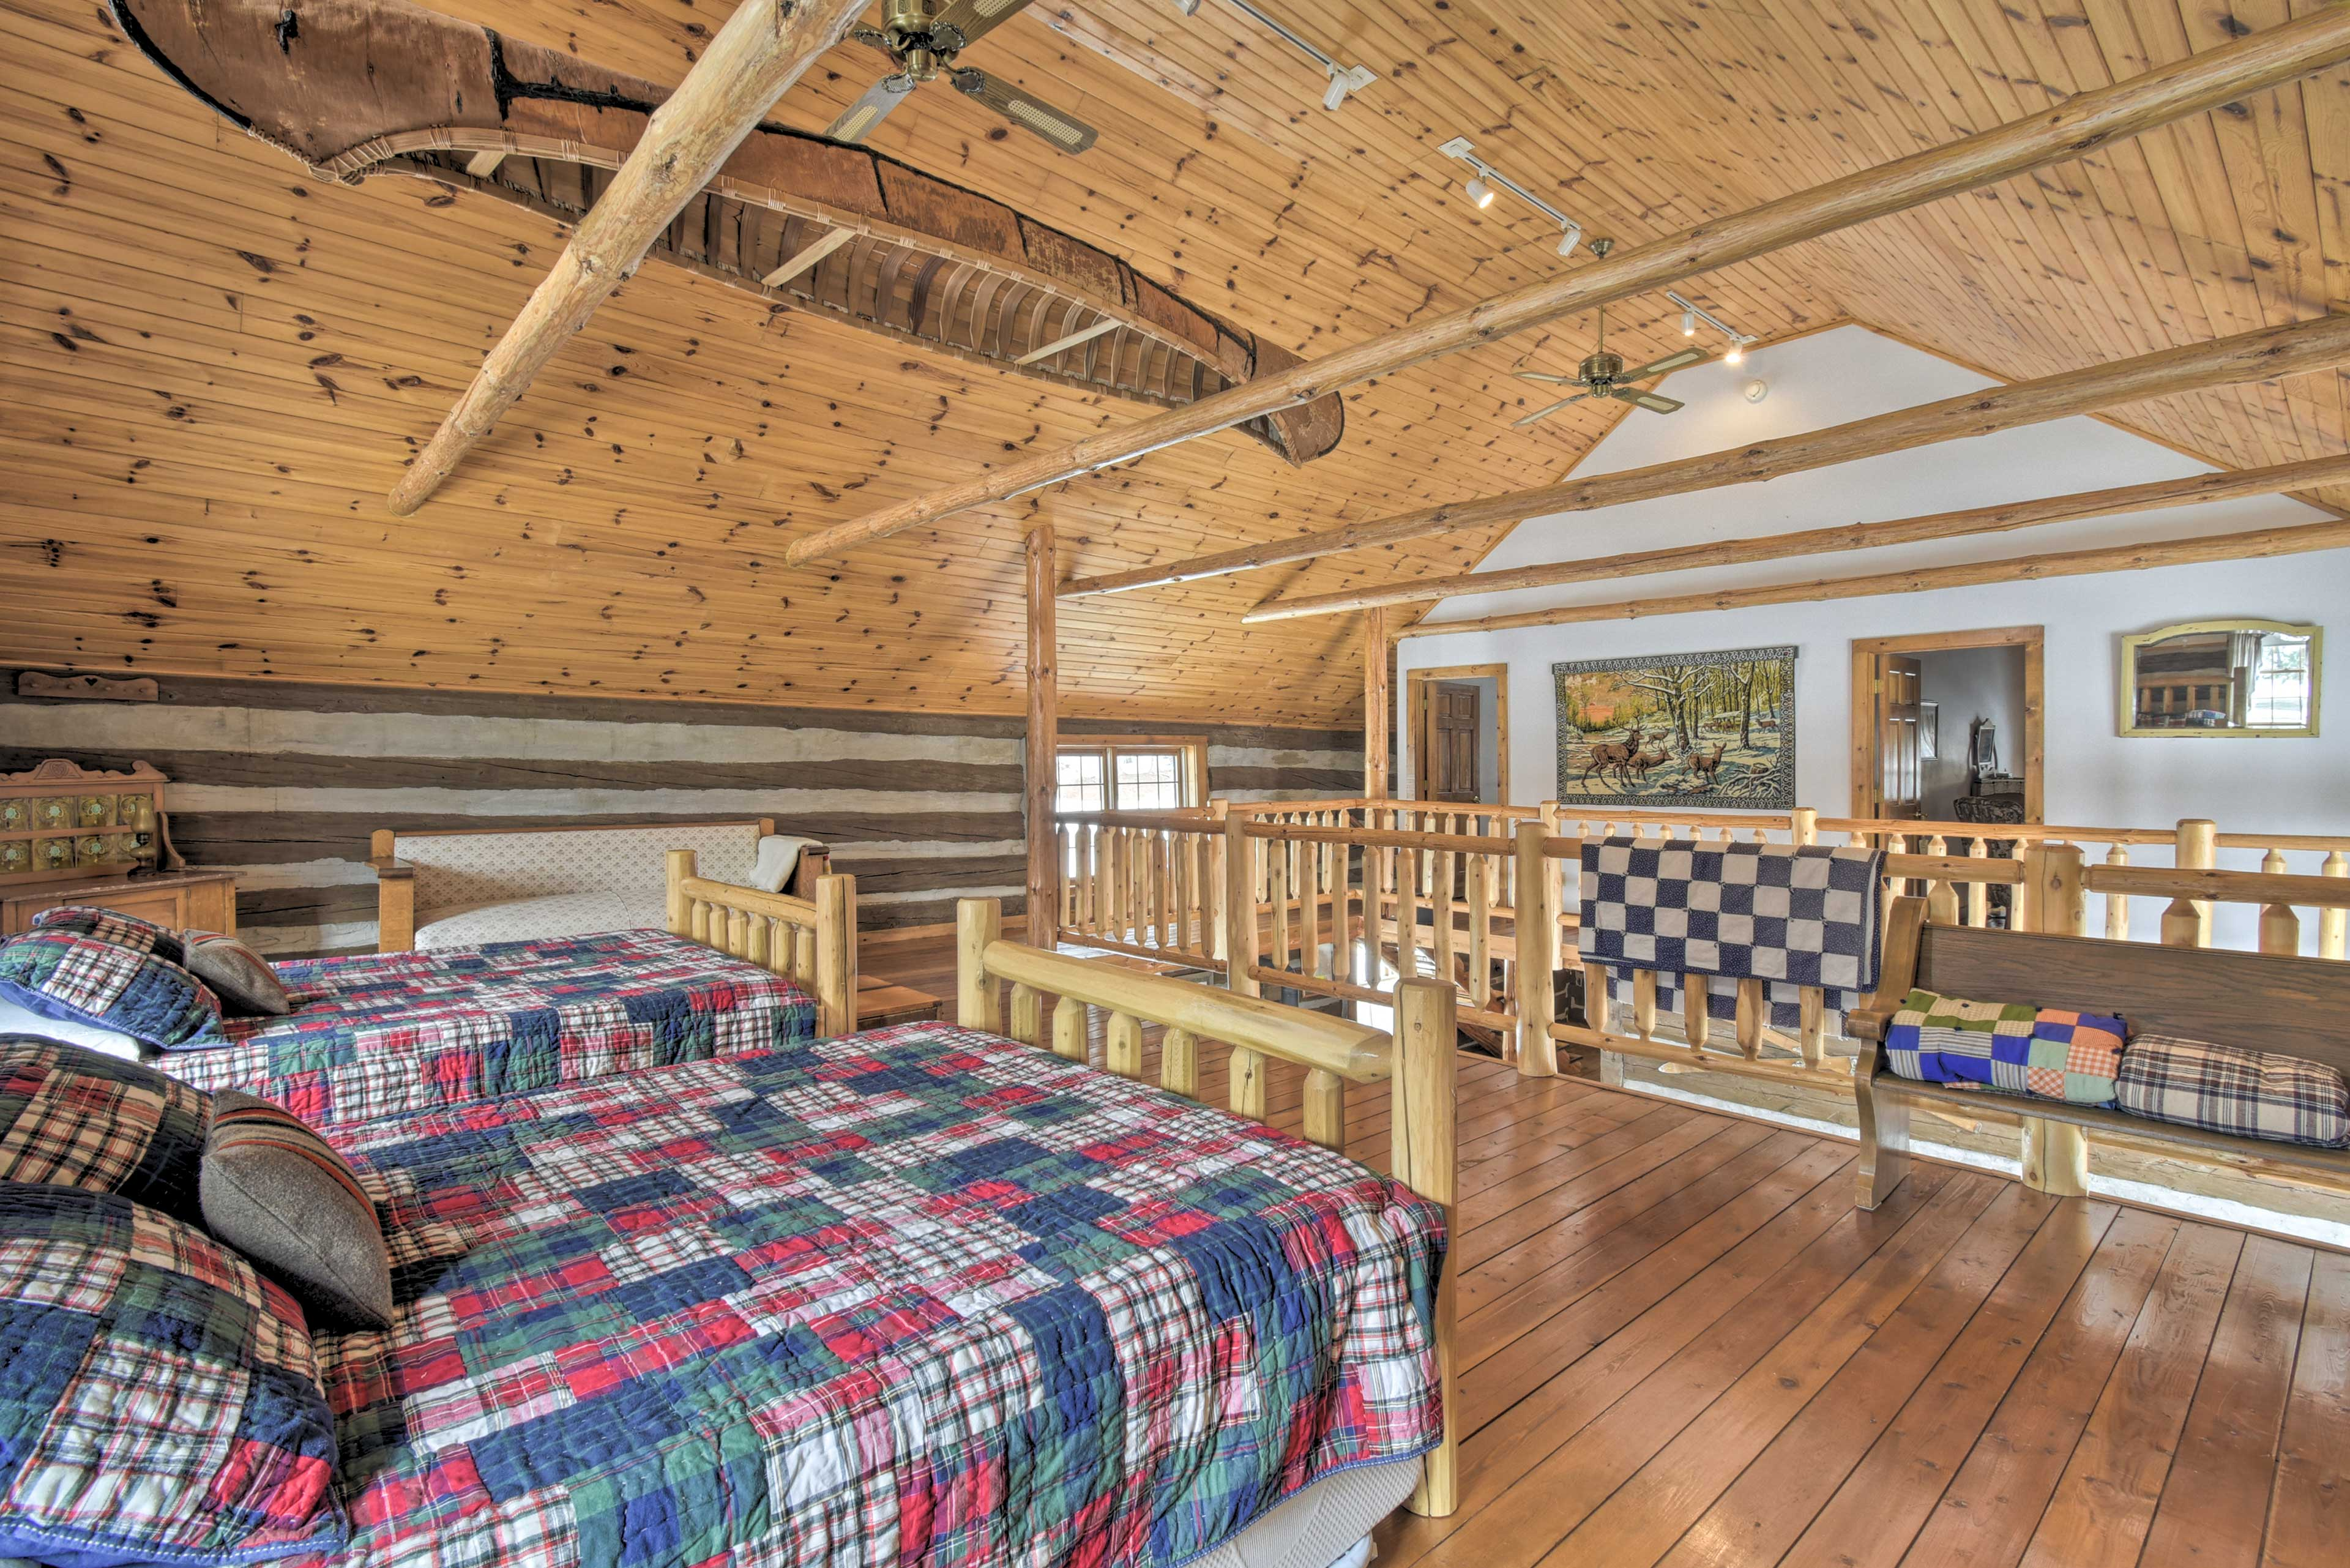 Loft: 2 queen beds w/ twin trundle beds